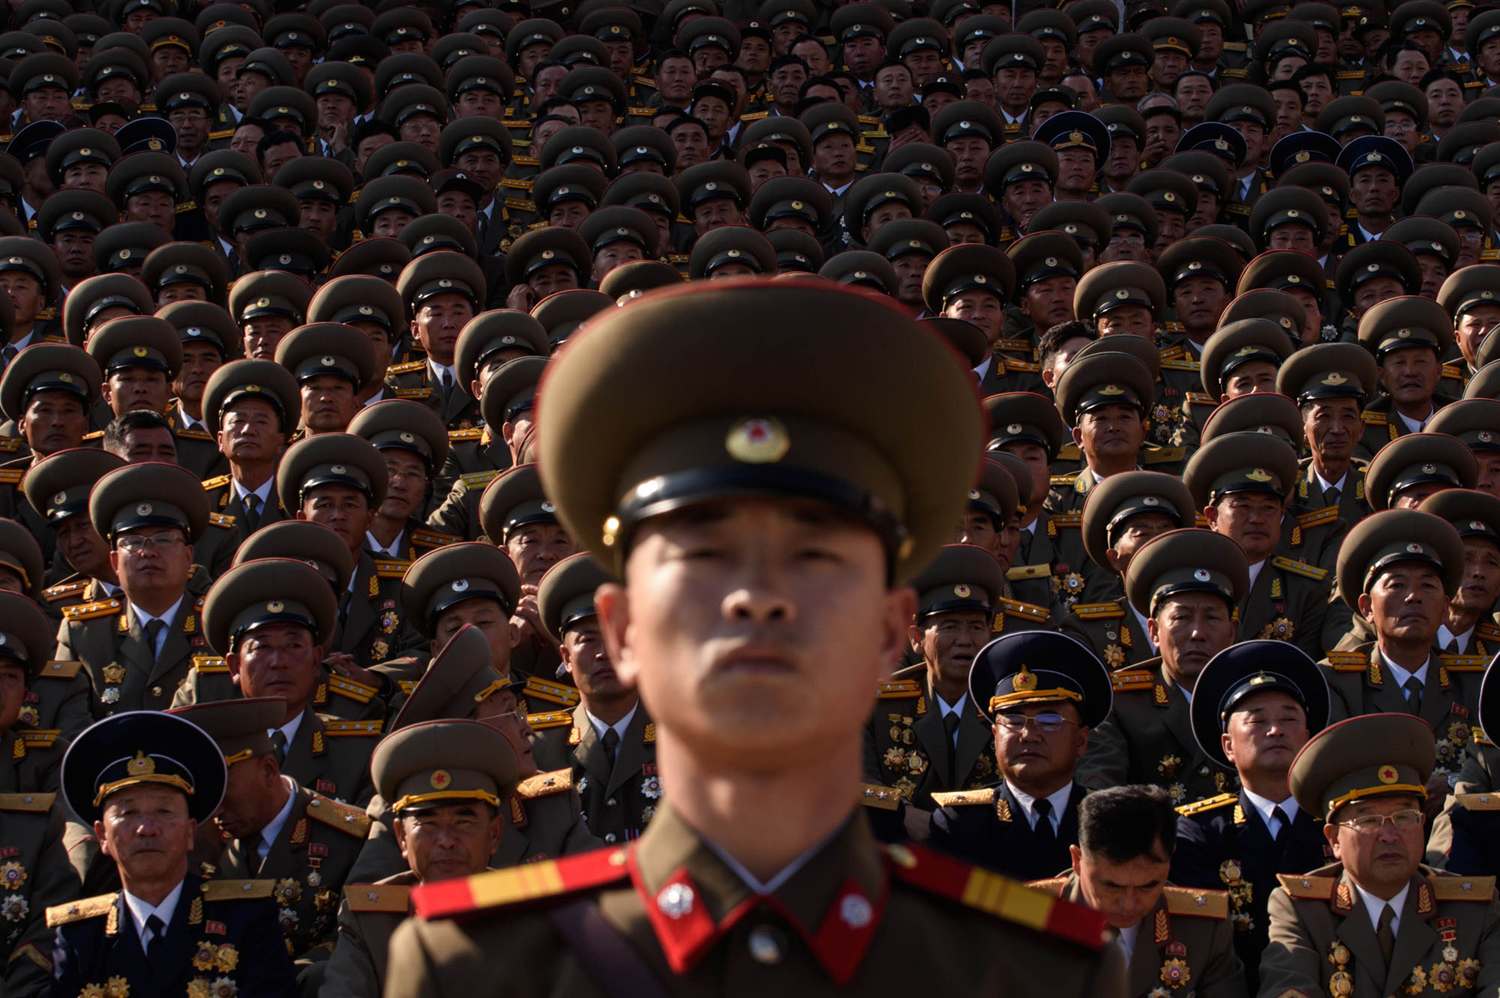 North Korea Marks 70 Years of Workers' Party Rule 11